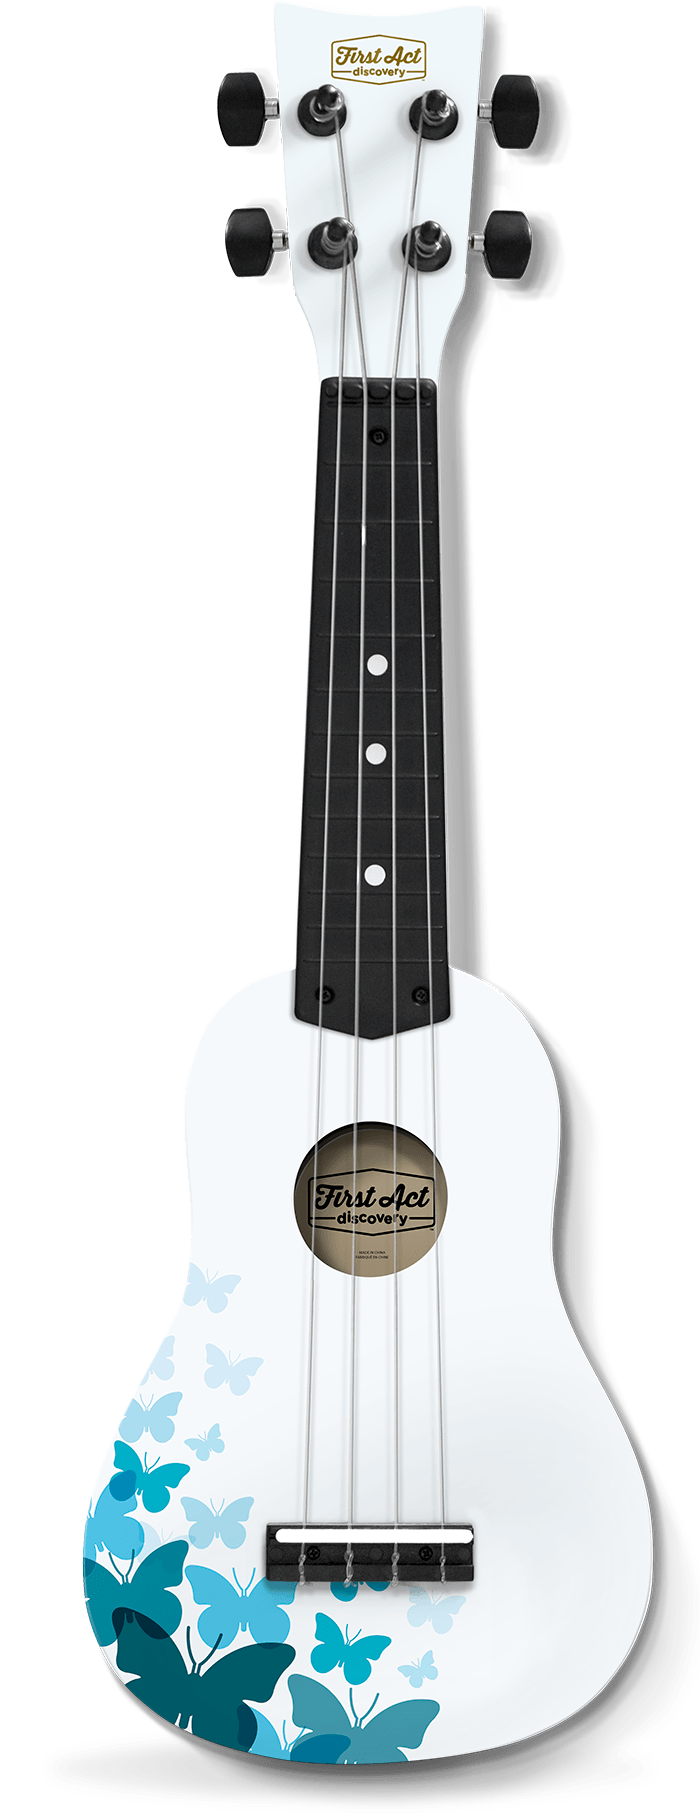 Soprano Ukulele in White | First Act Discovery Image